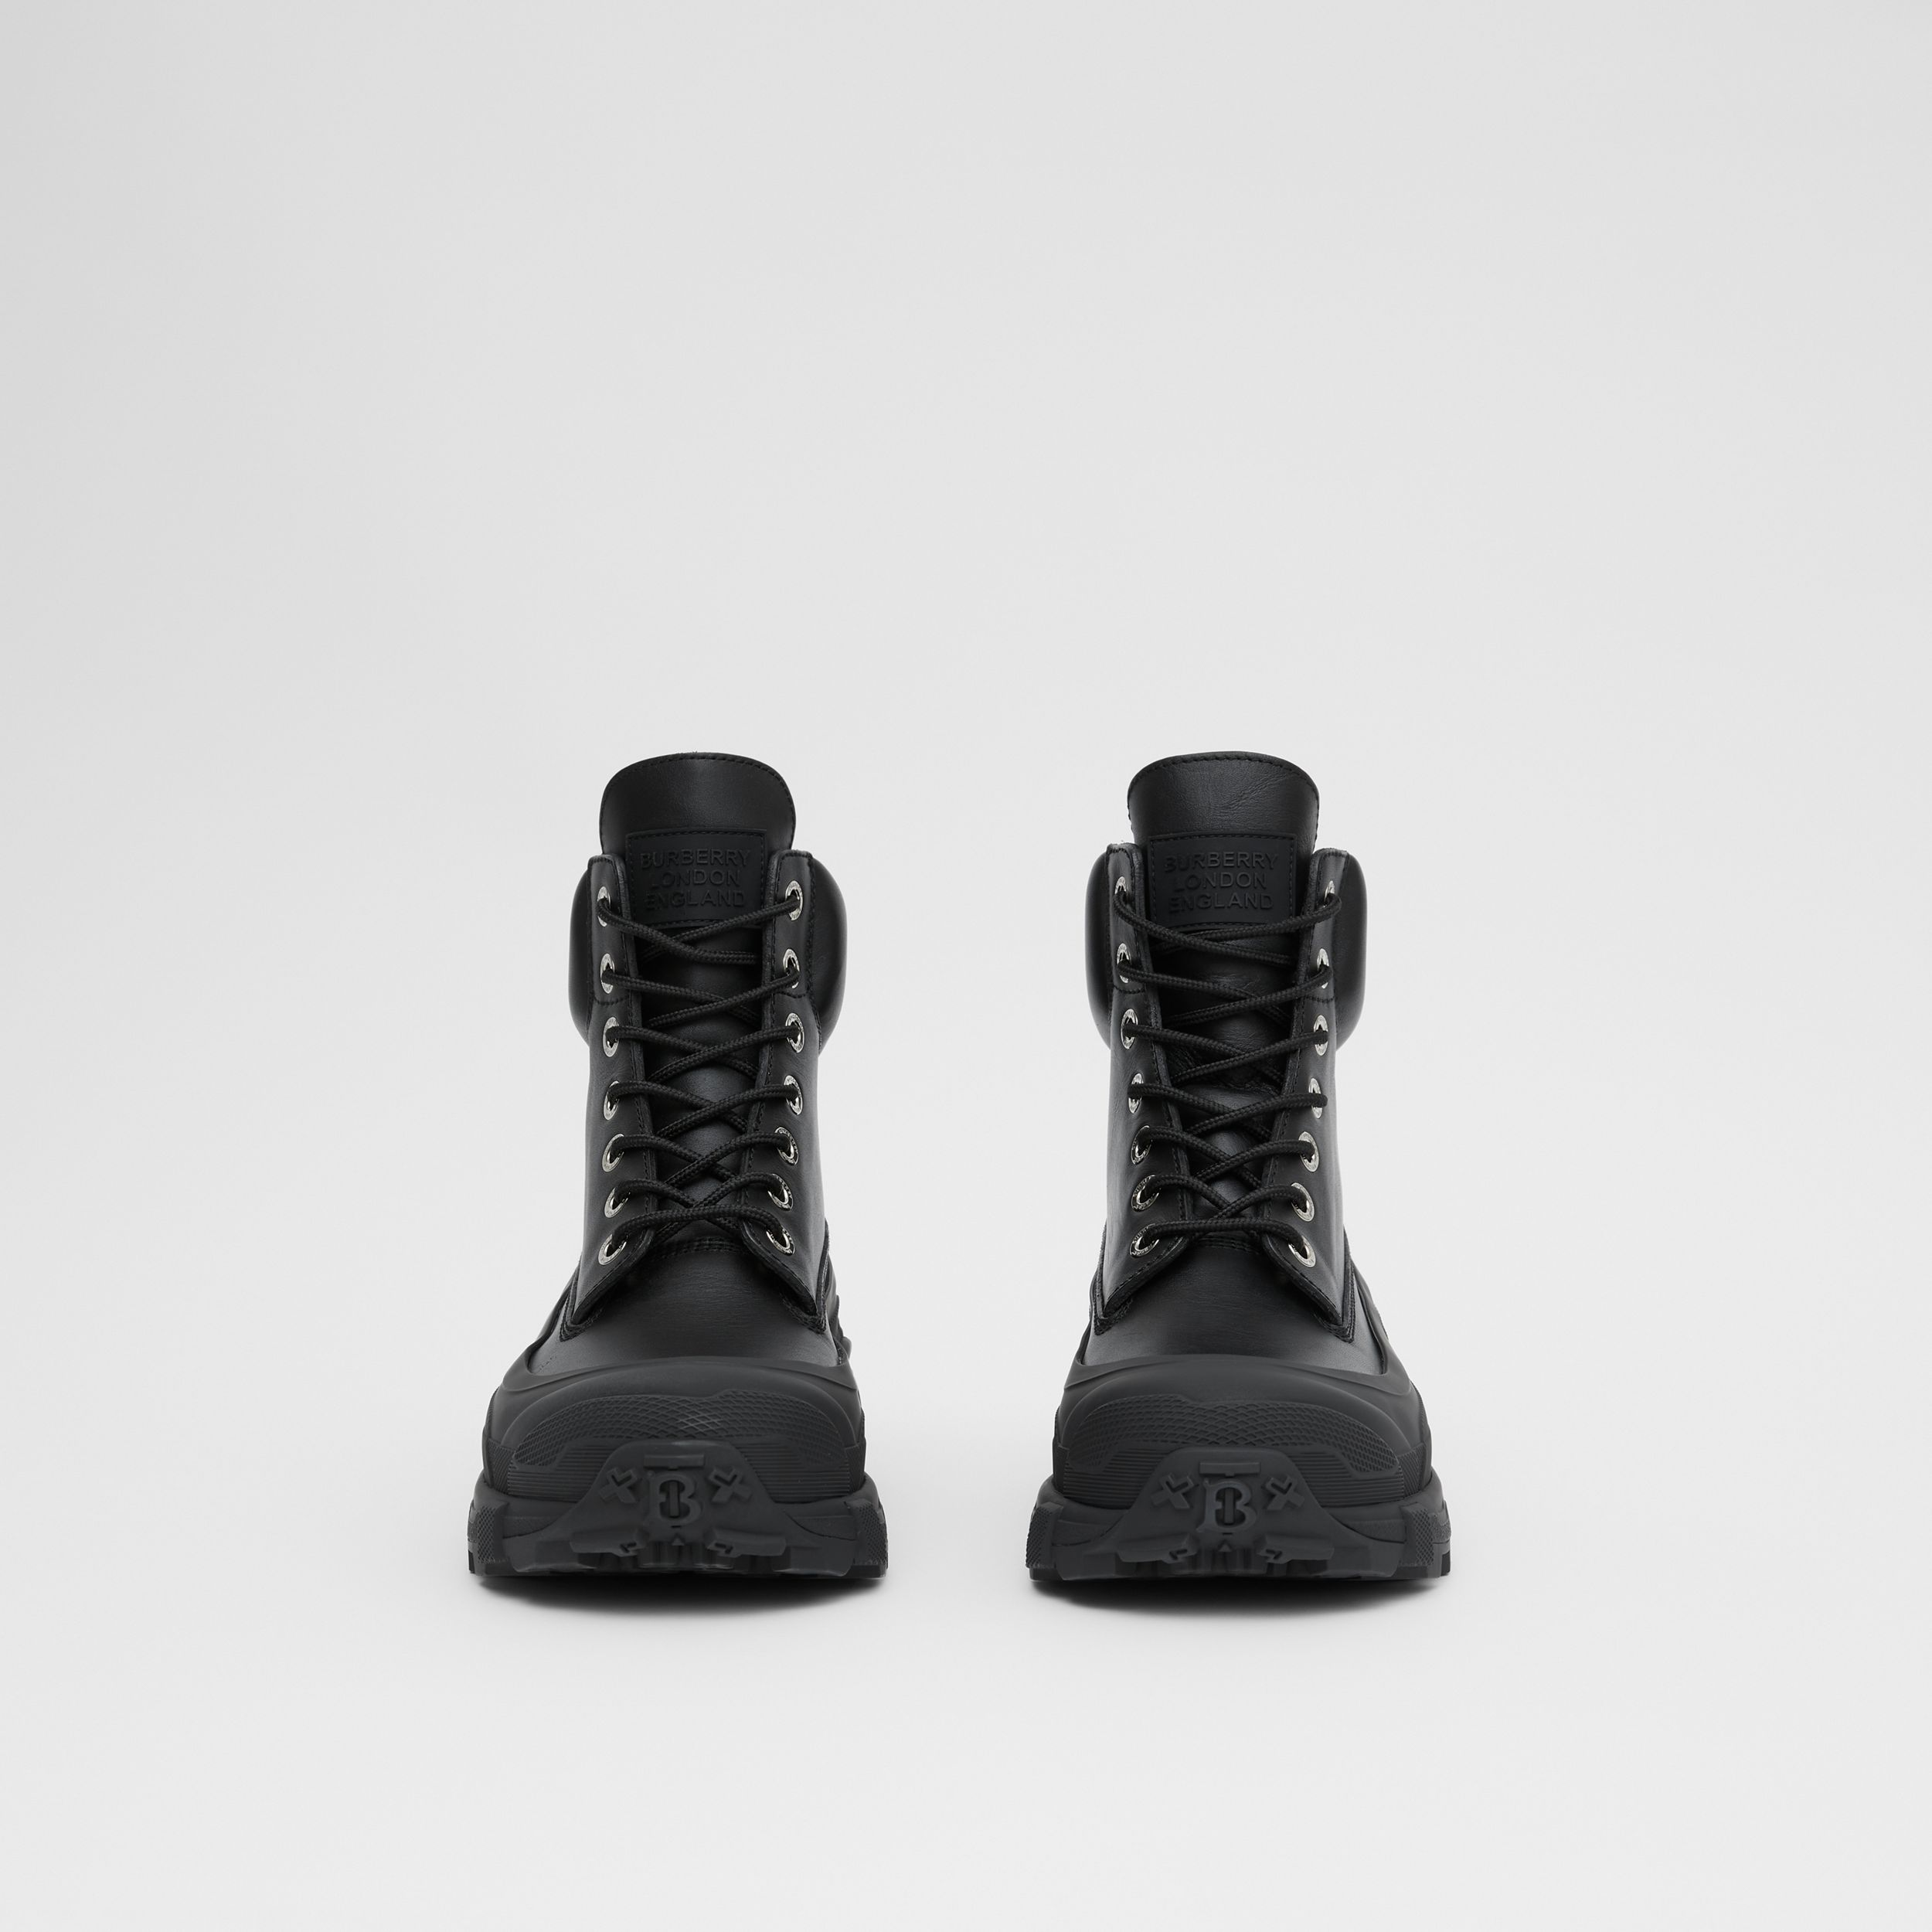 Contrast Sole Leather Boots in Black - Men | Burberry - 4